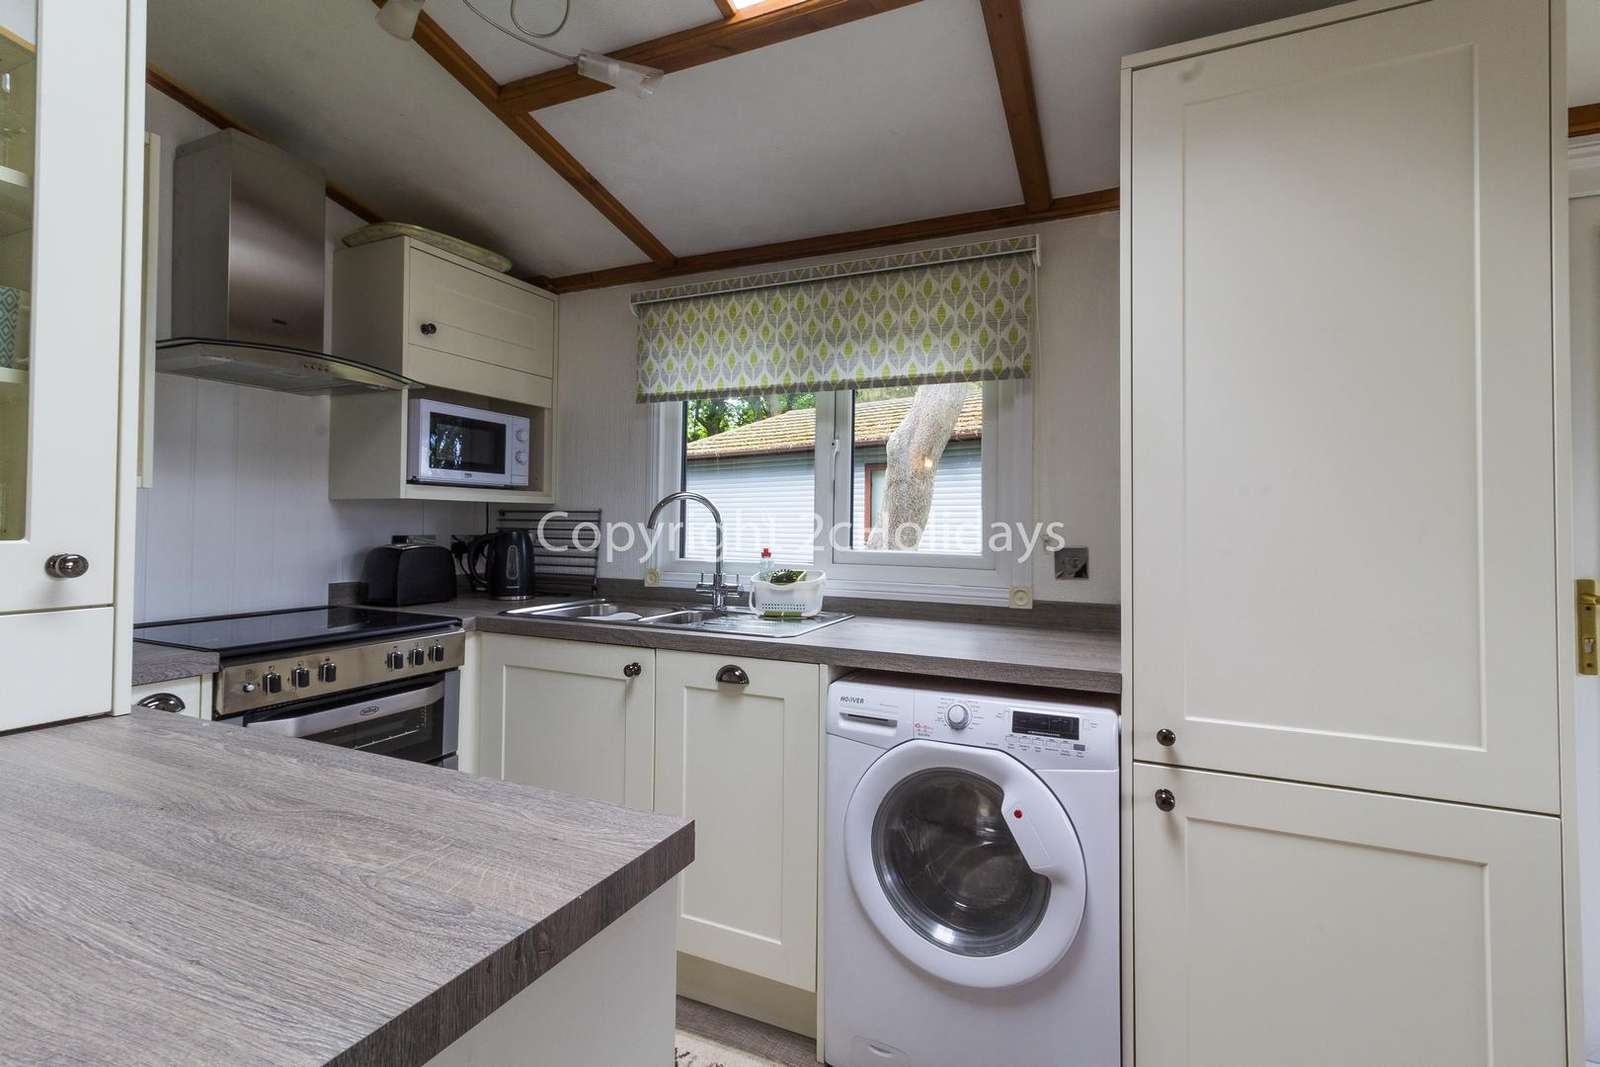 This kitchen includes a dishwasher and a washer/drier!